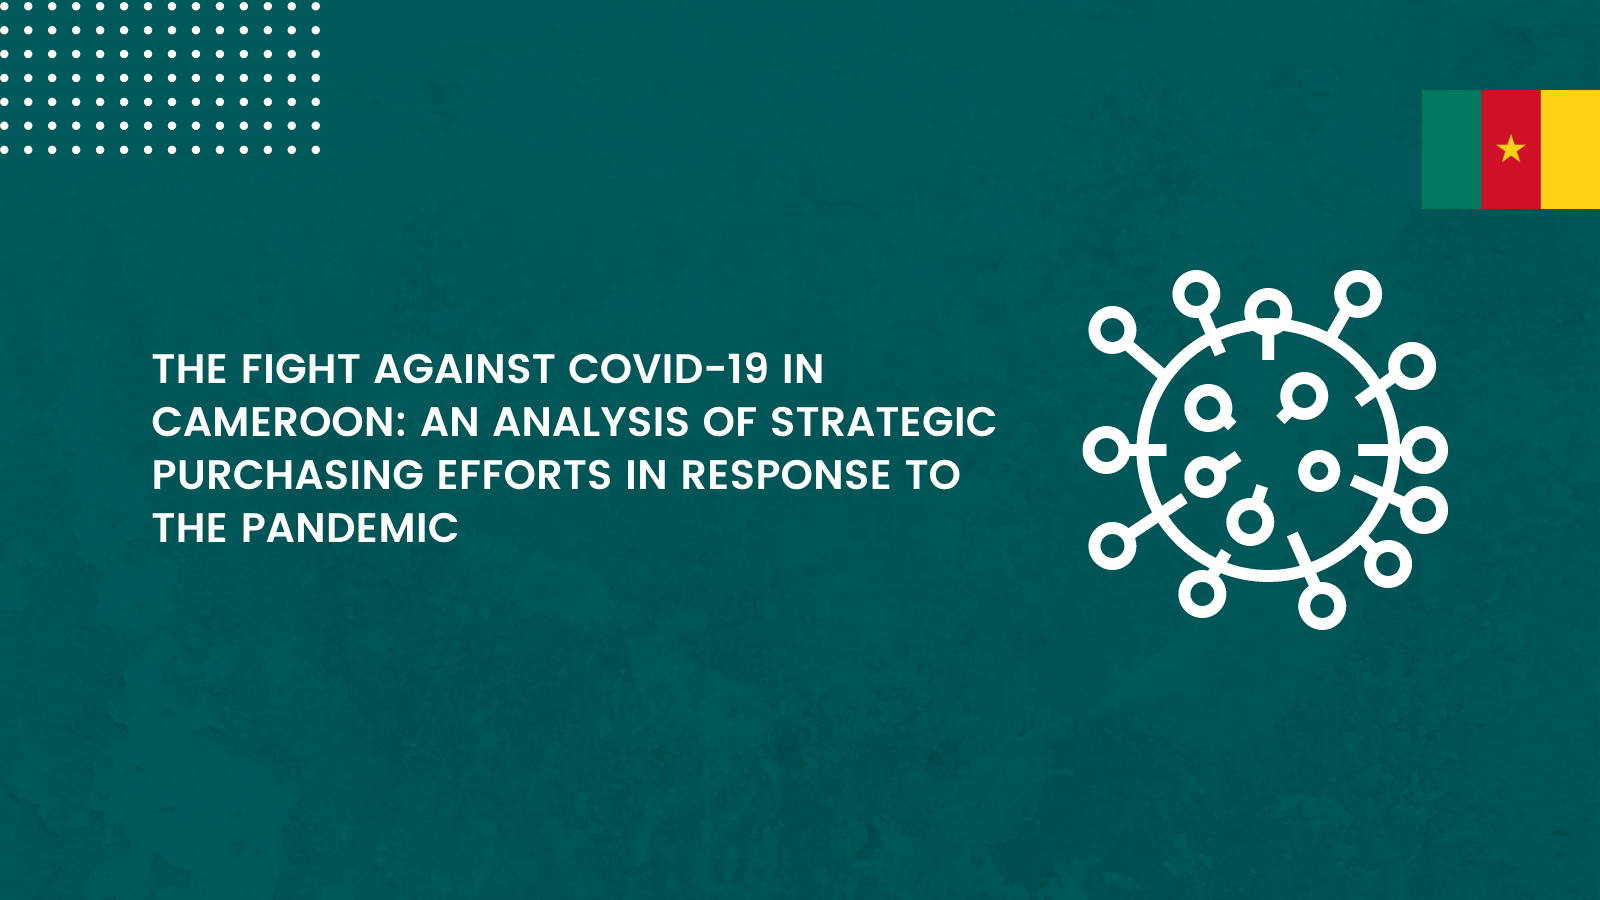 The Fight Against COVID-19 In Cameroon: An Analysis Of Strategic Purchasing Efforts In Response To The Pandemic